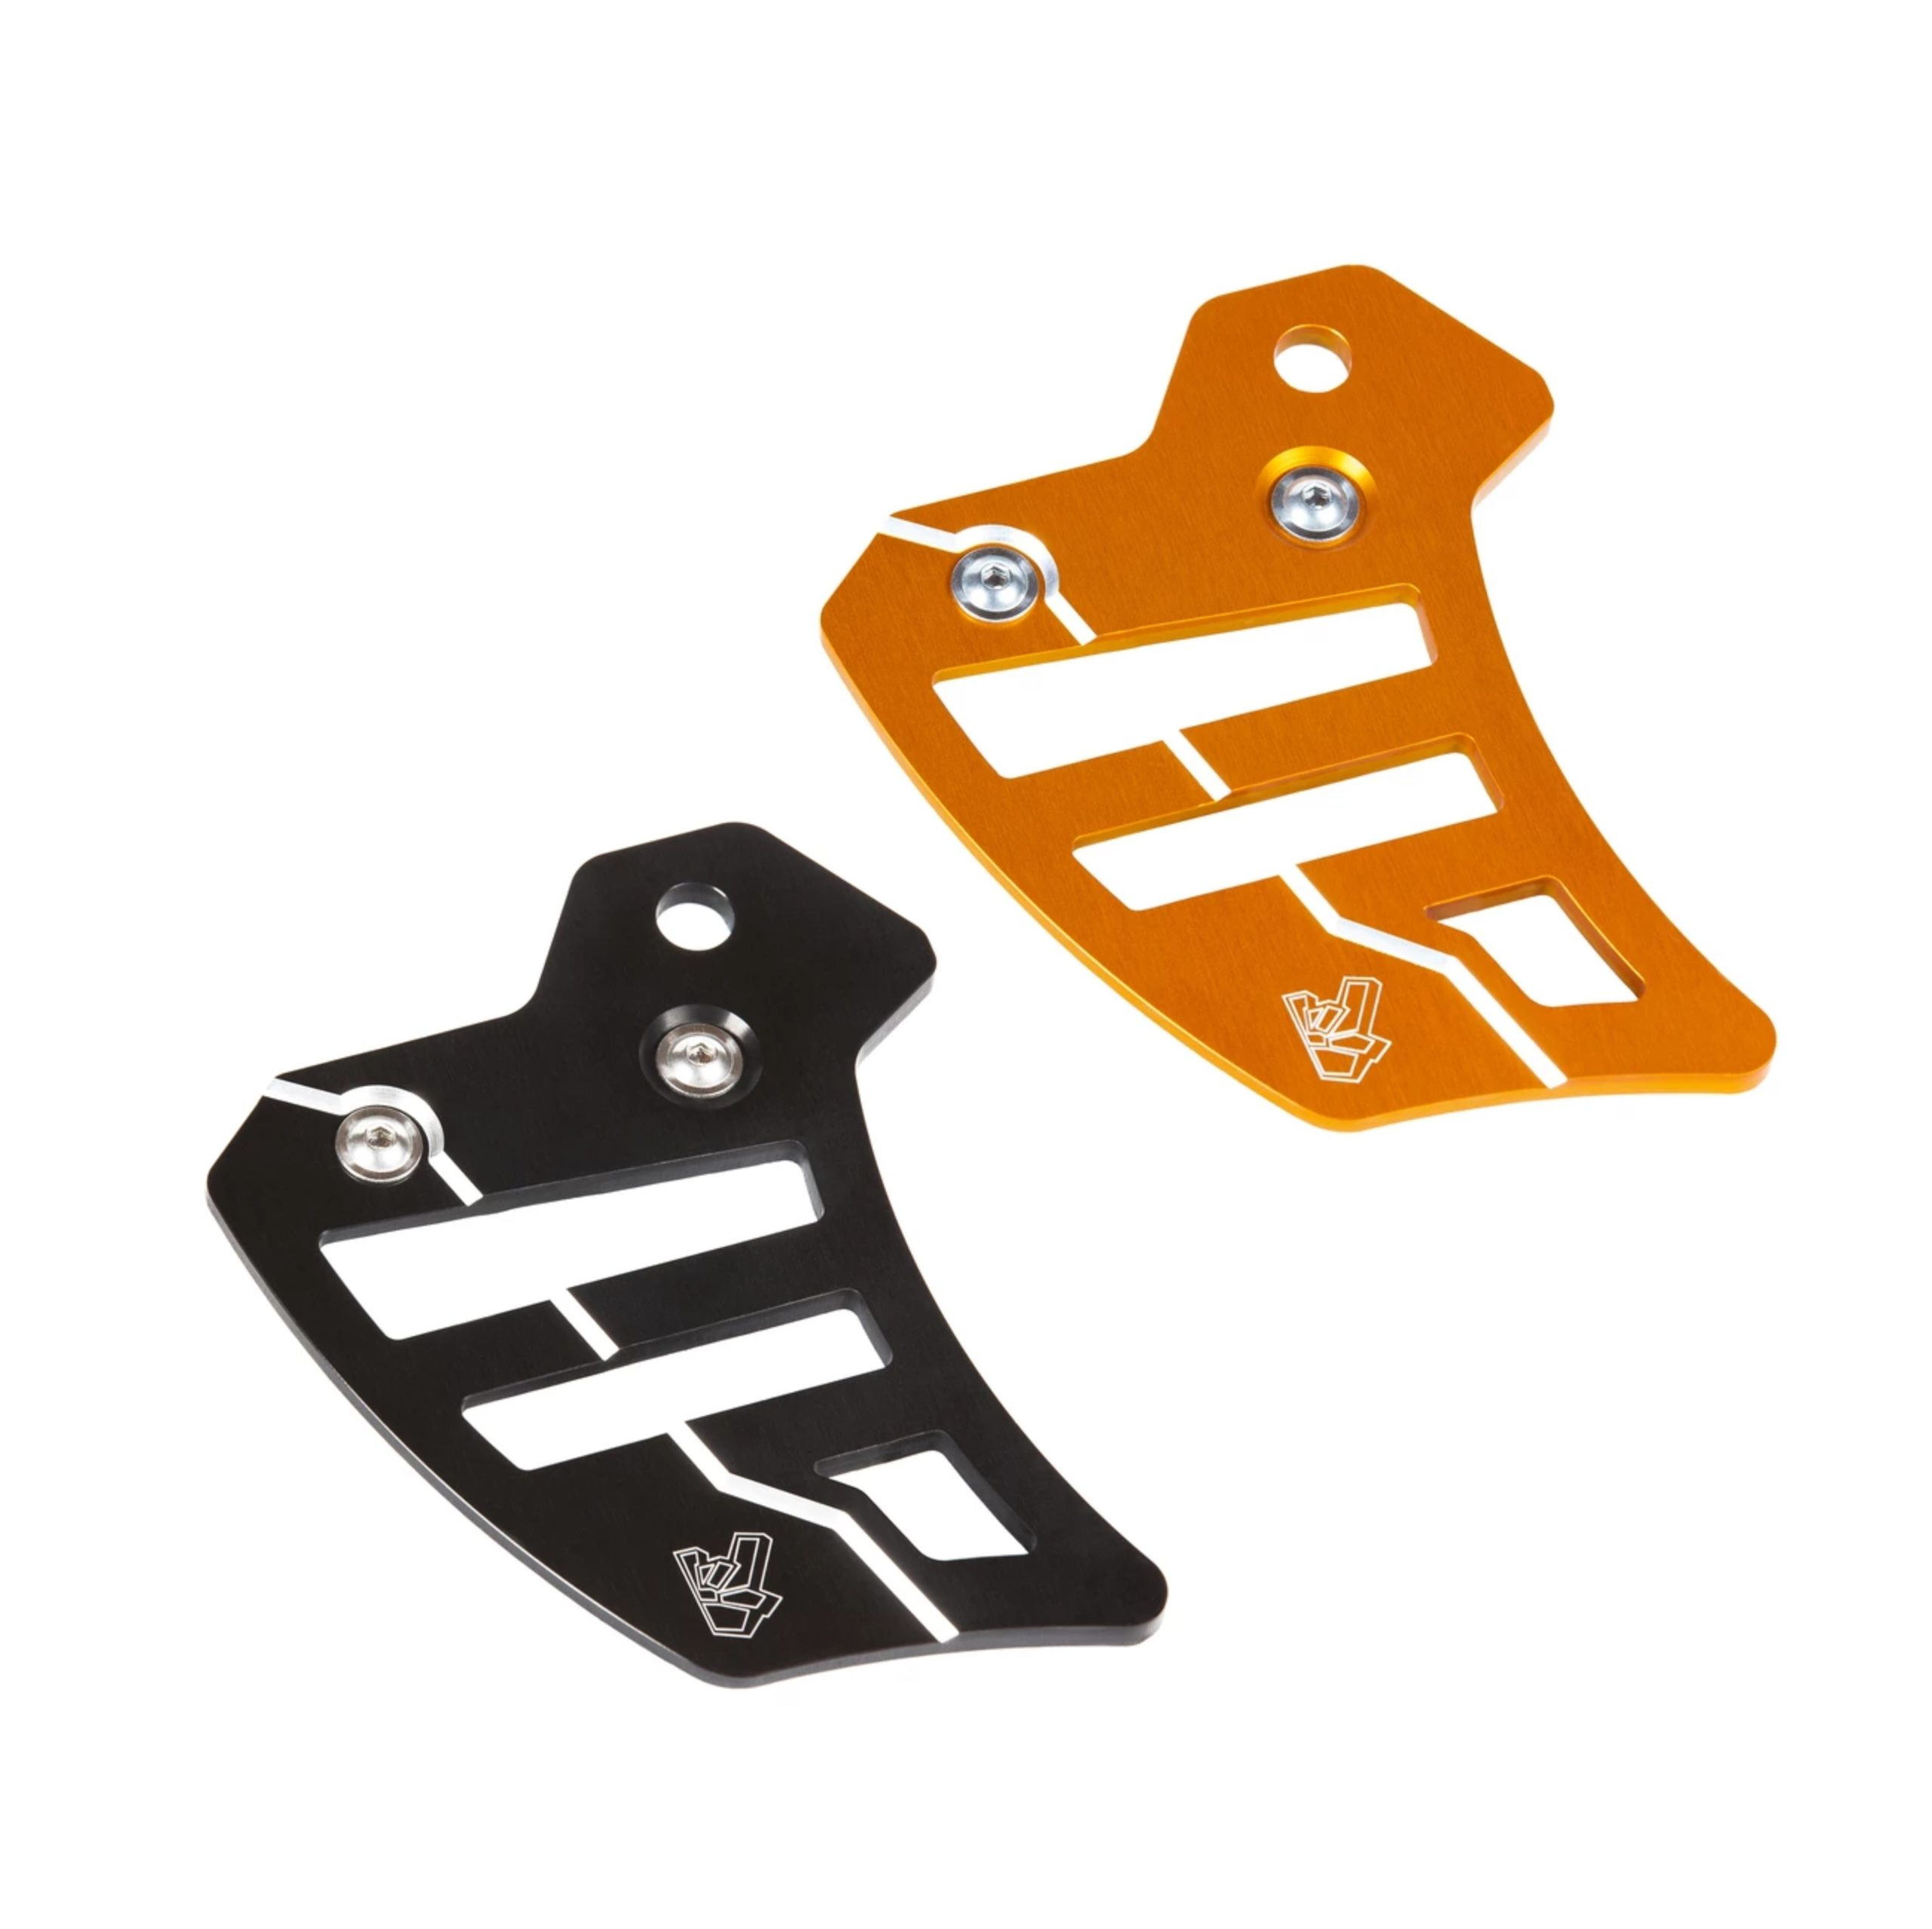 TOE CHAIN GUARD - KTM DUKE 125 / 200 / 250 / 390 MY 2017+